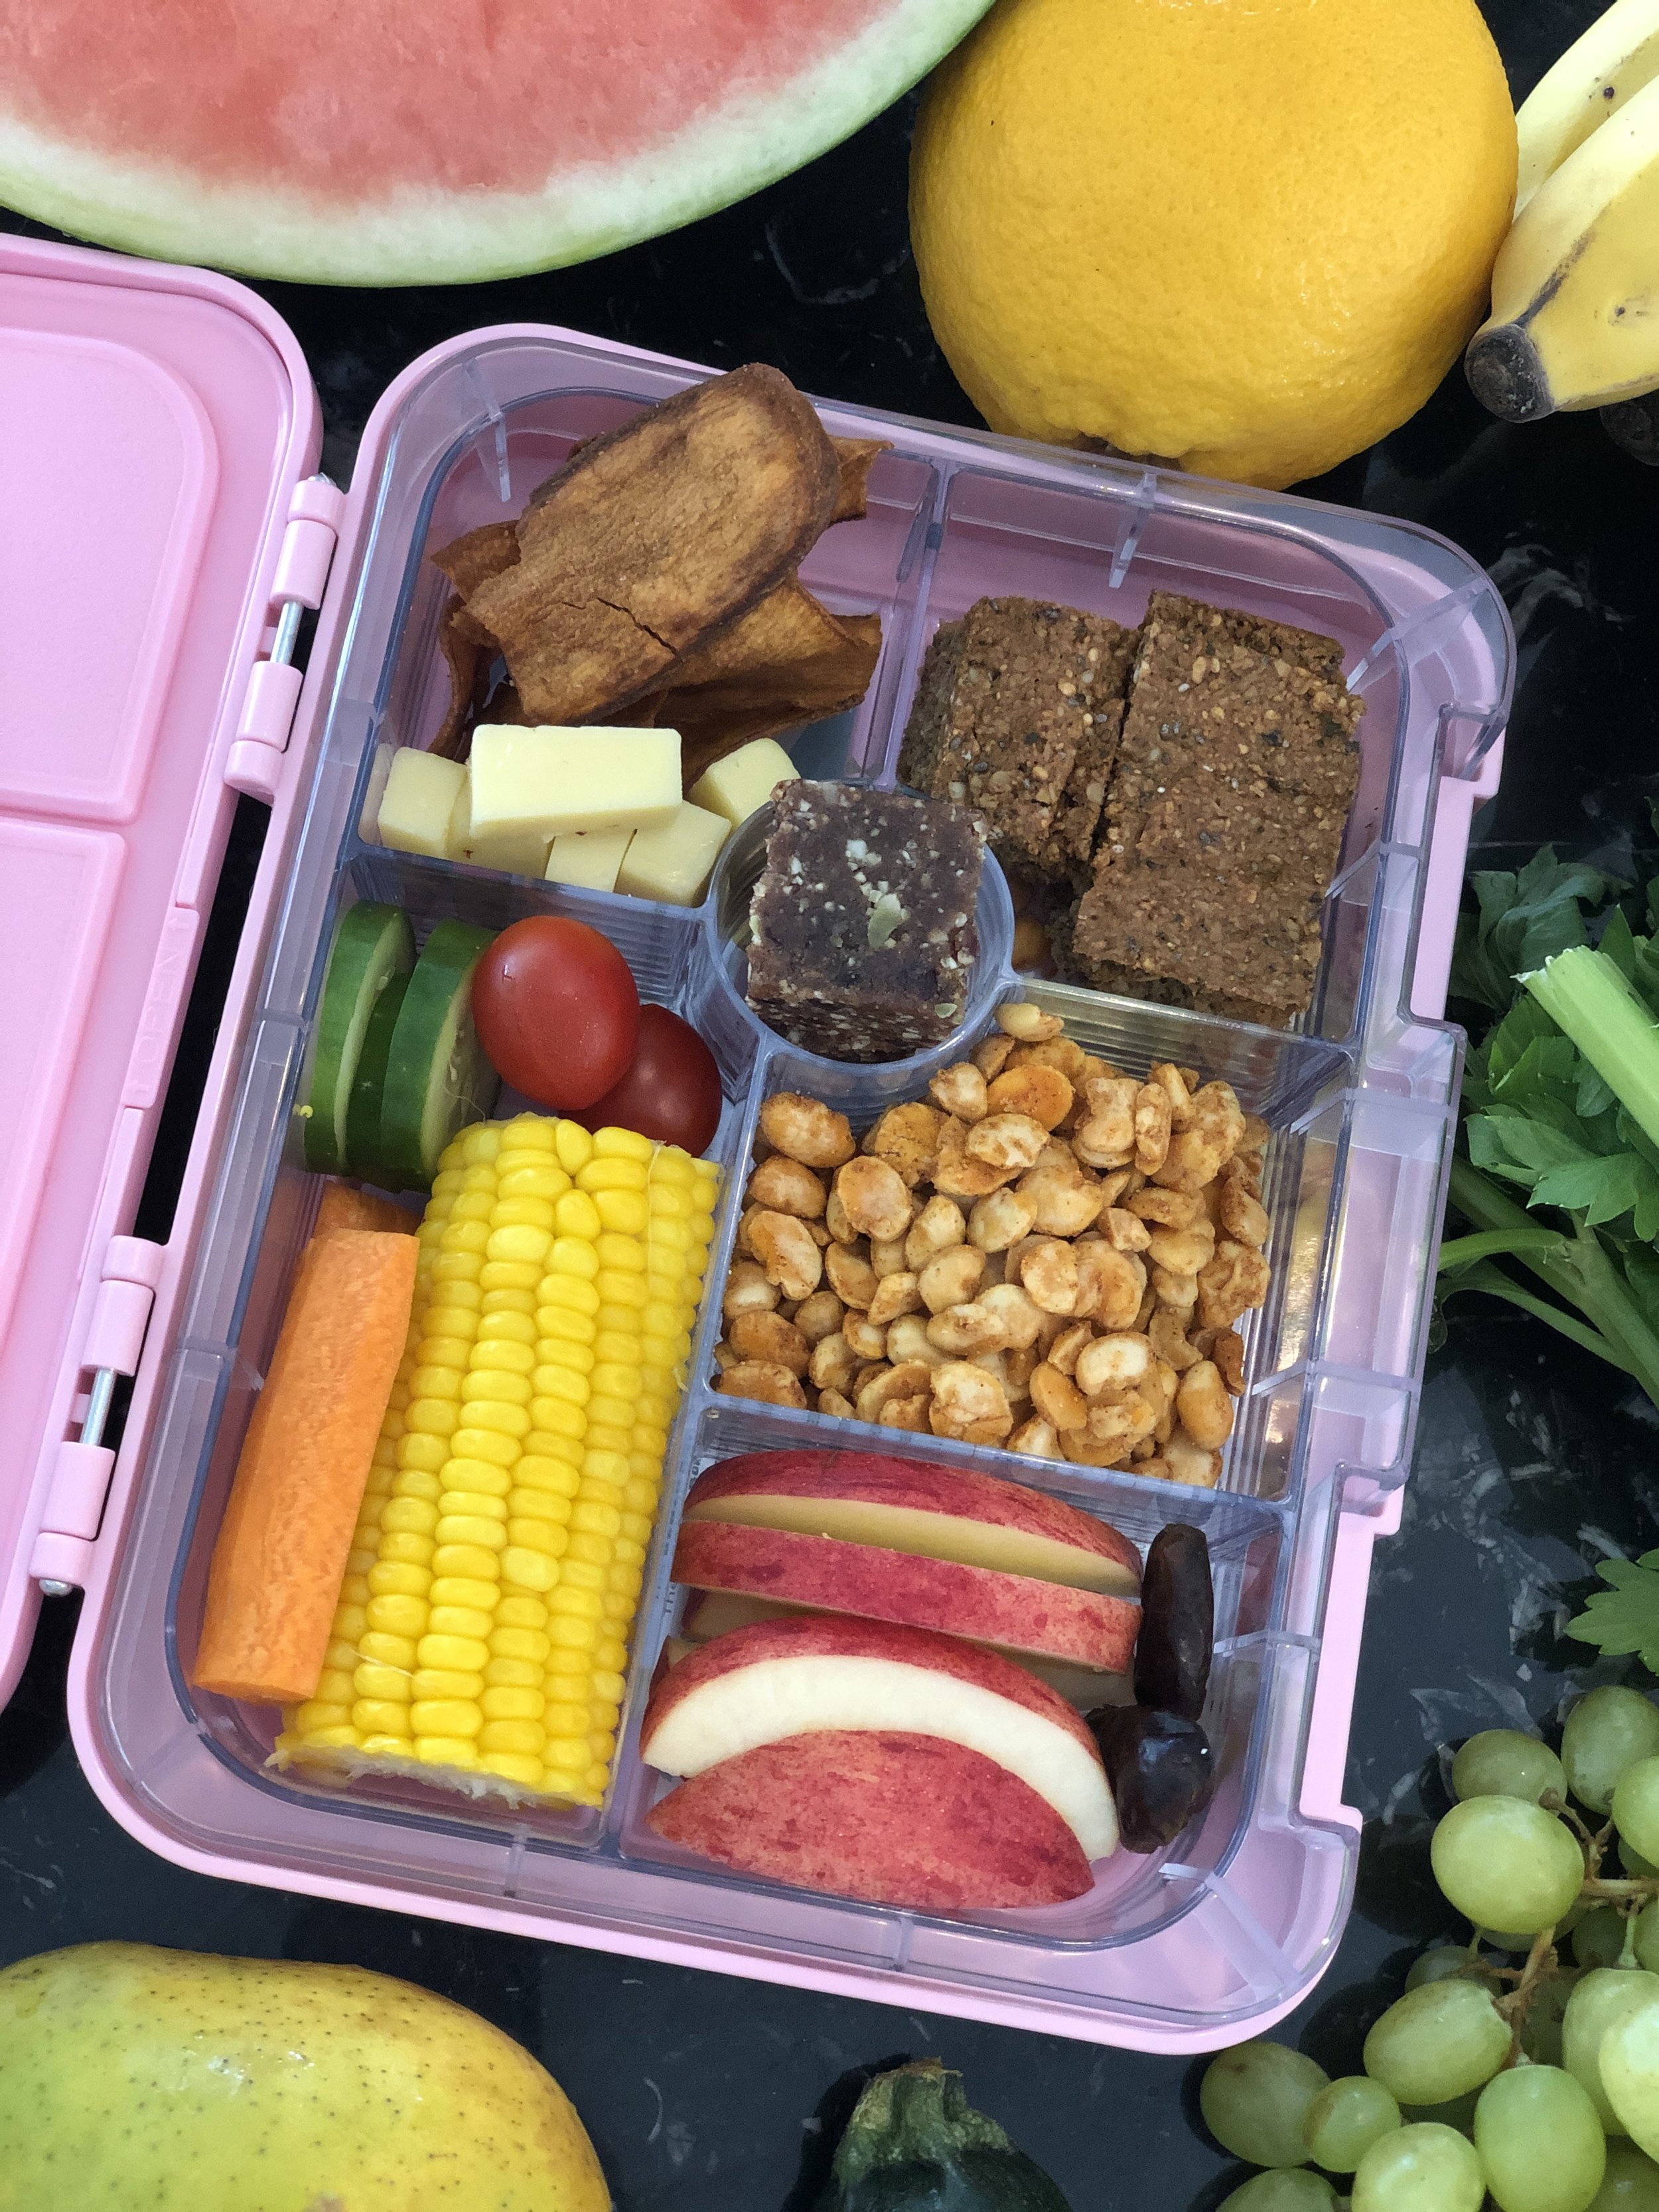 TUESDAY - Dairy: Cheese and sweet potatoe chipsVege: Salad and corn on the cobFruit: Apple and dried fruitsProtein: Human Bean Co Faba BeansGrain: Lunchbox friendly Muesli Bars from the Wholesome ChildTreat: Health Lab Kids Probiotic Bites